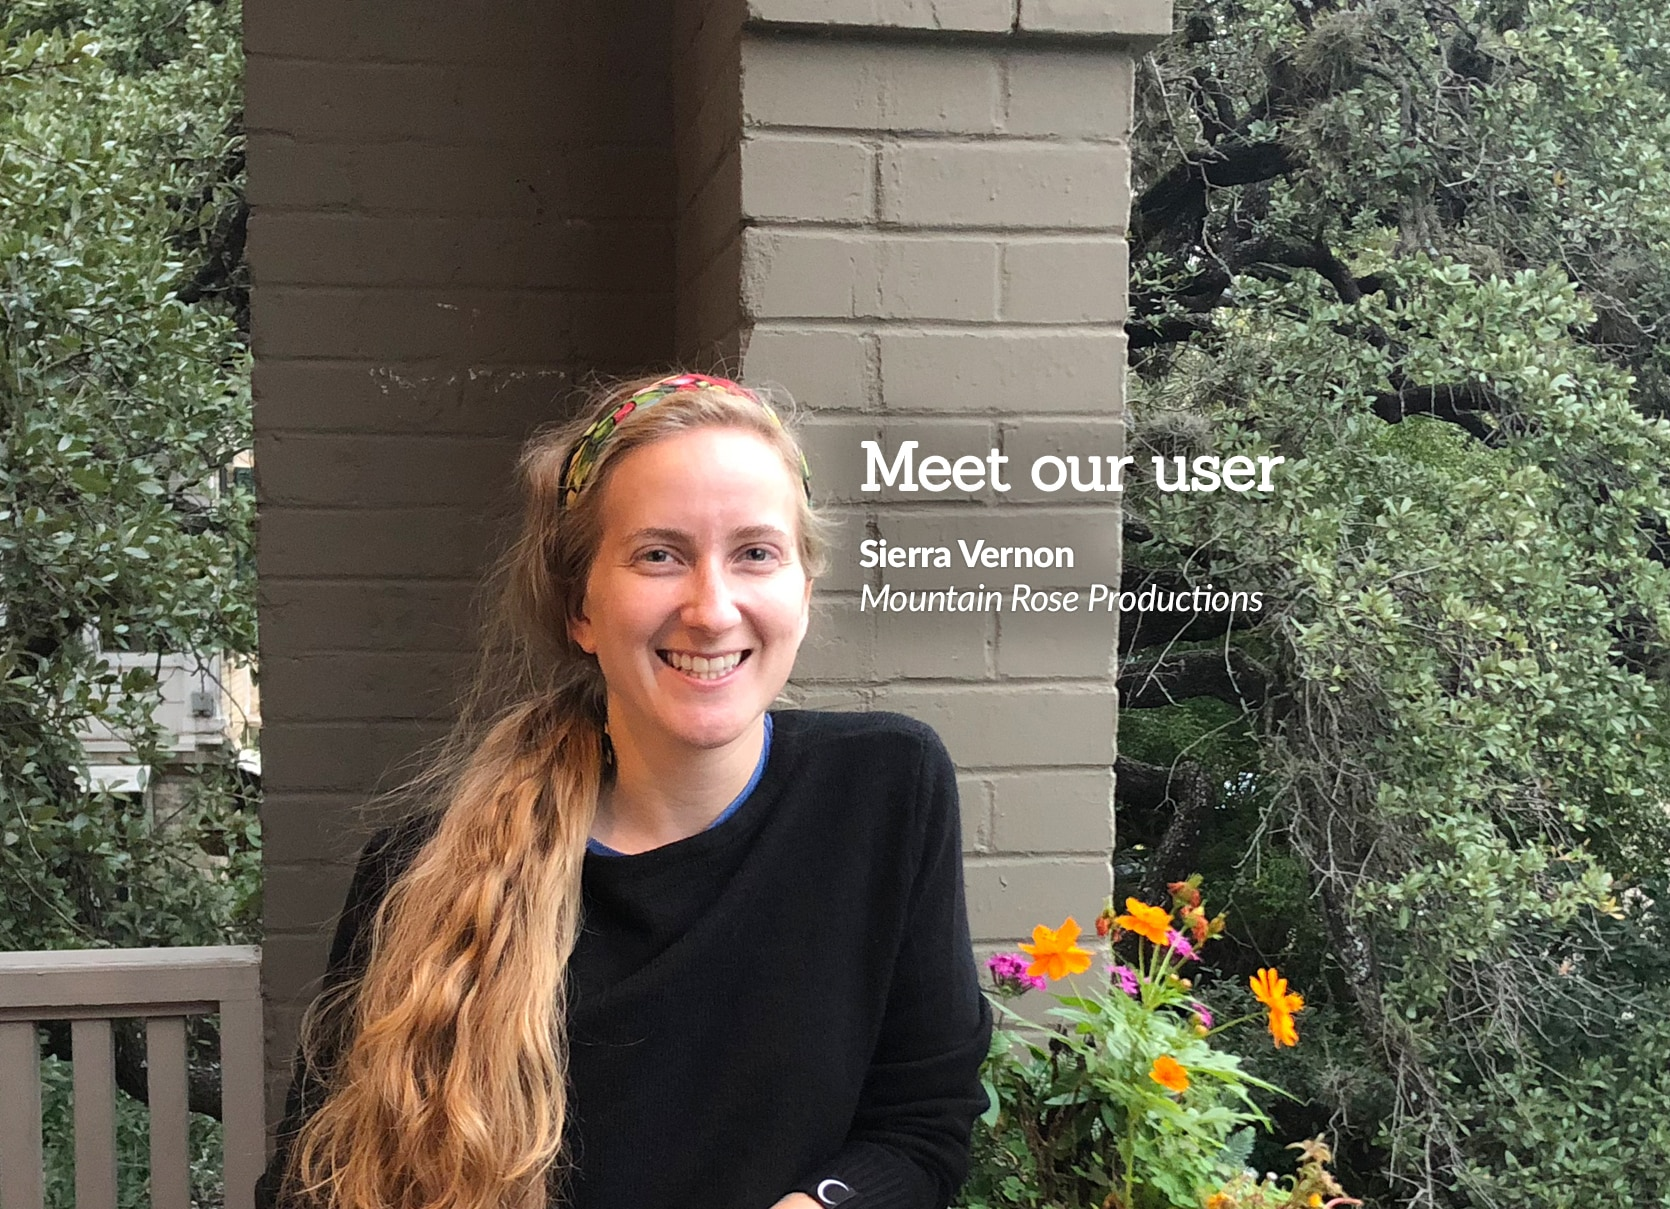 Sierra Vernon of Mountain Rose Productions